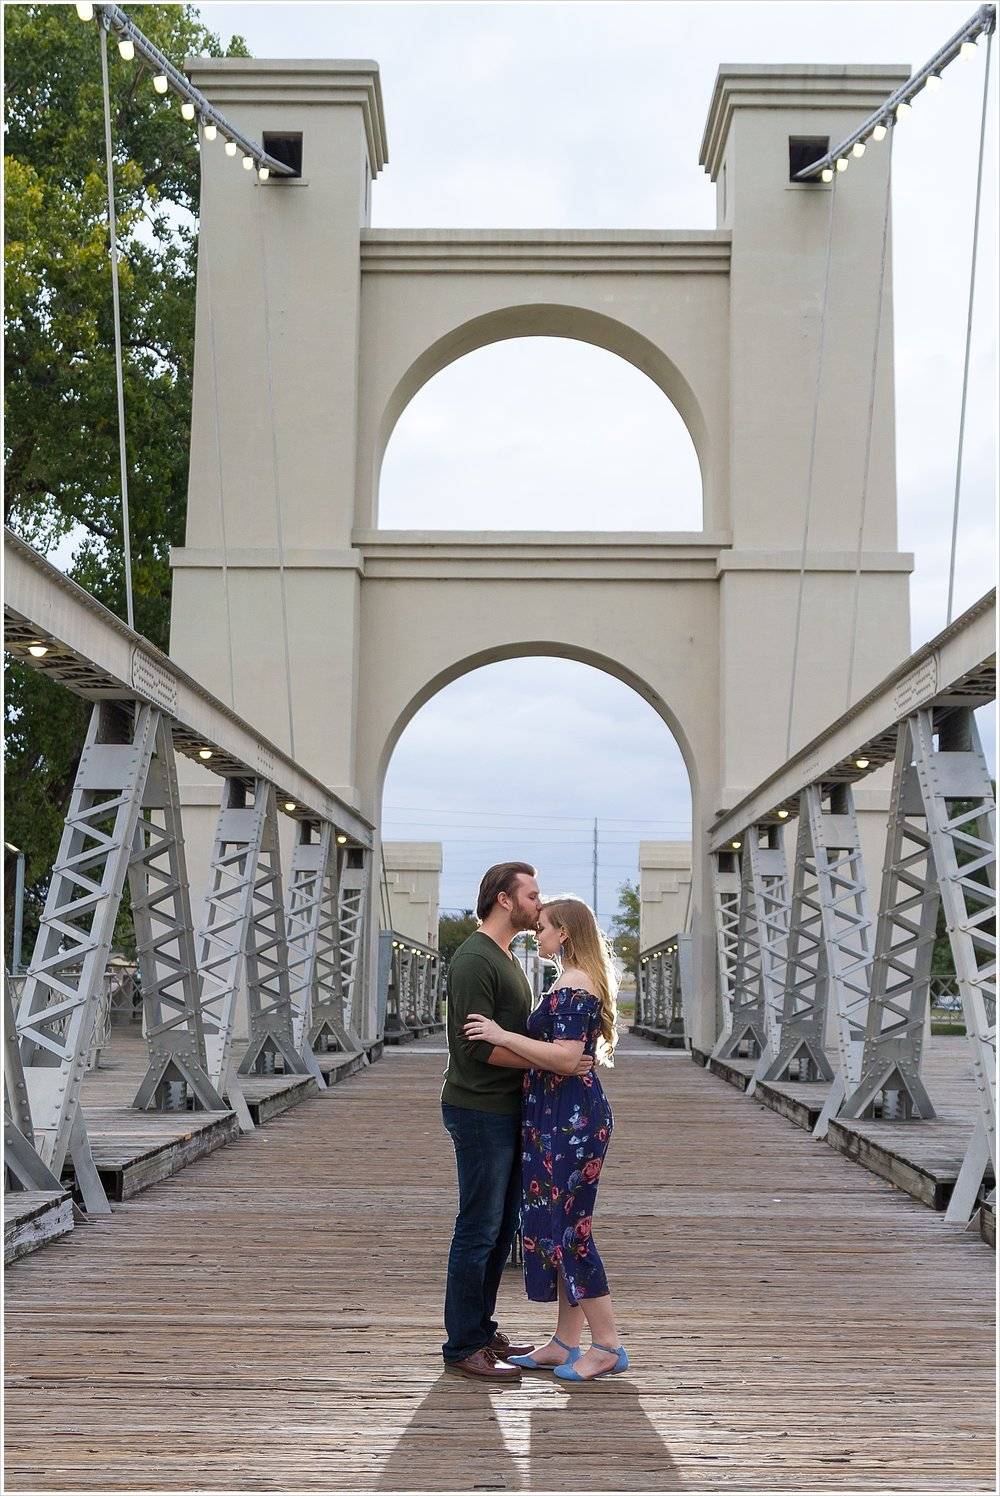 A man kisses his fiance's forehead as they embrace during their engagement photos on the Waco Suspension Bridge - Jason & Melaina Photography - www.jasonandmelaina.com